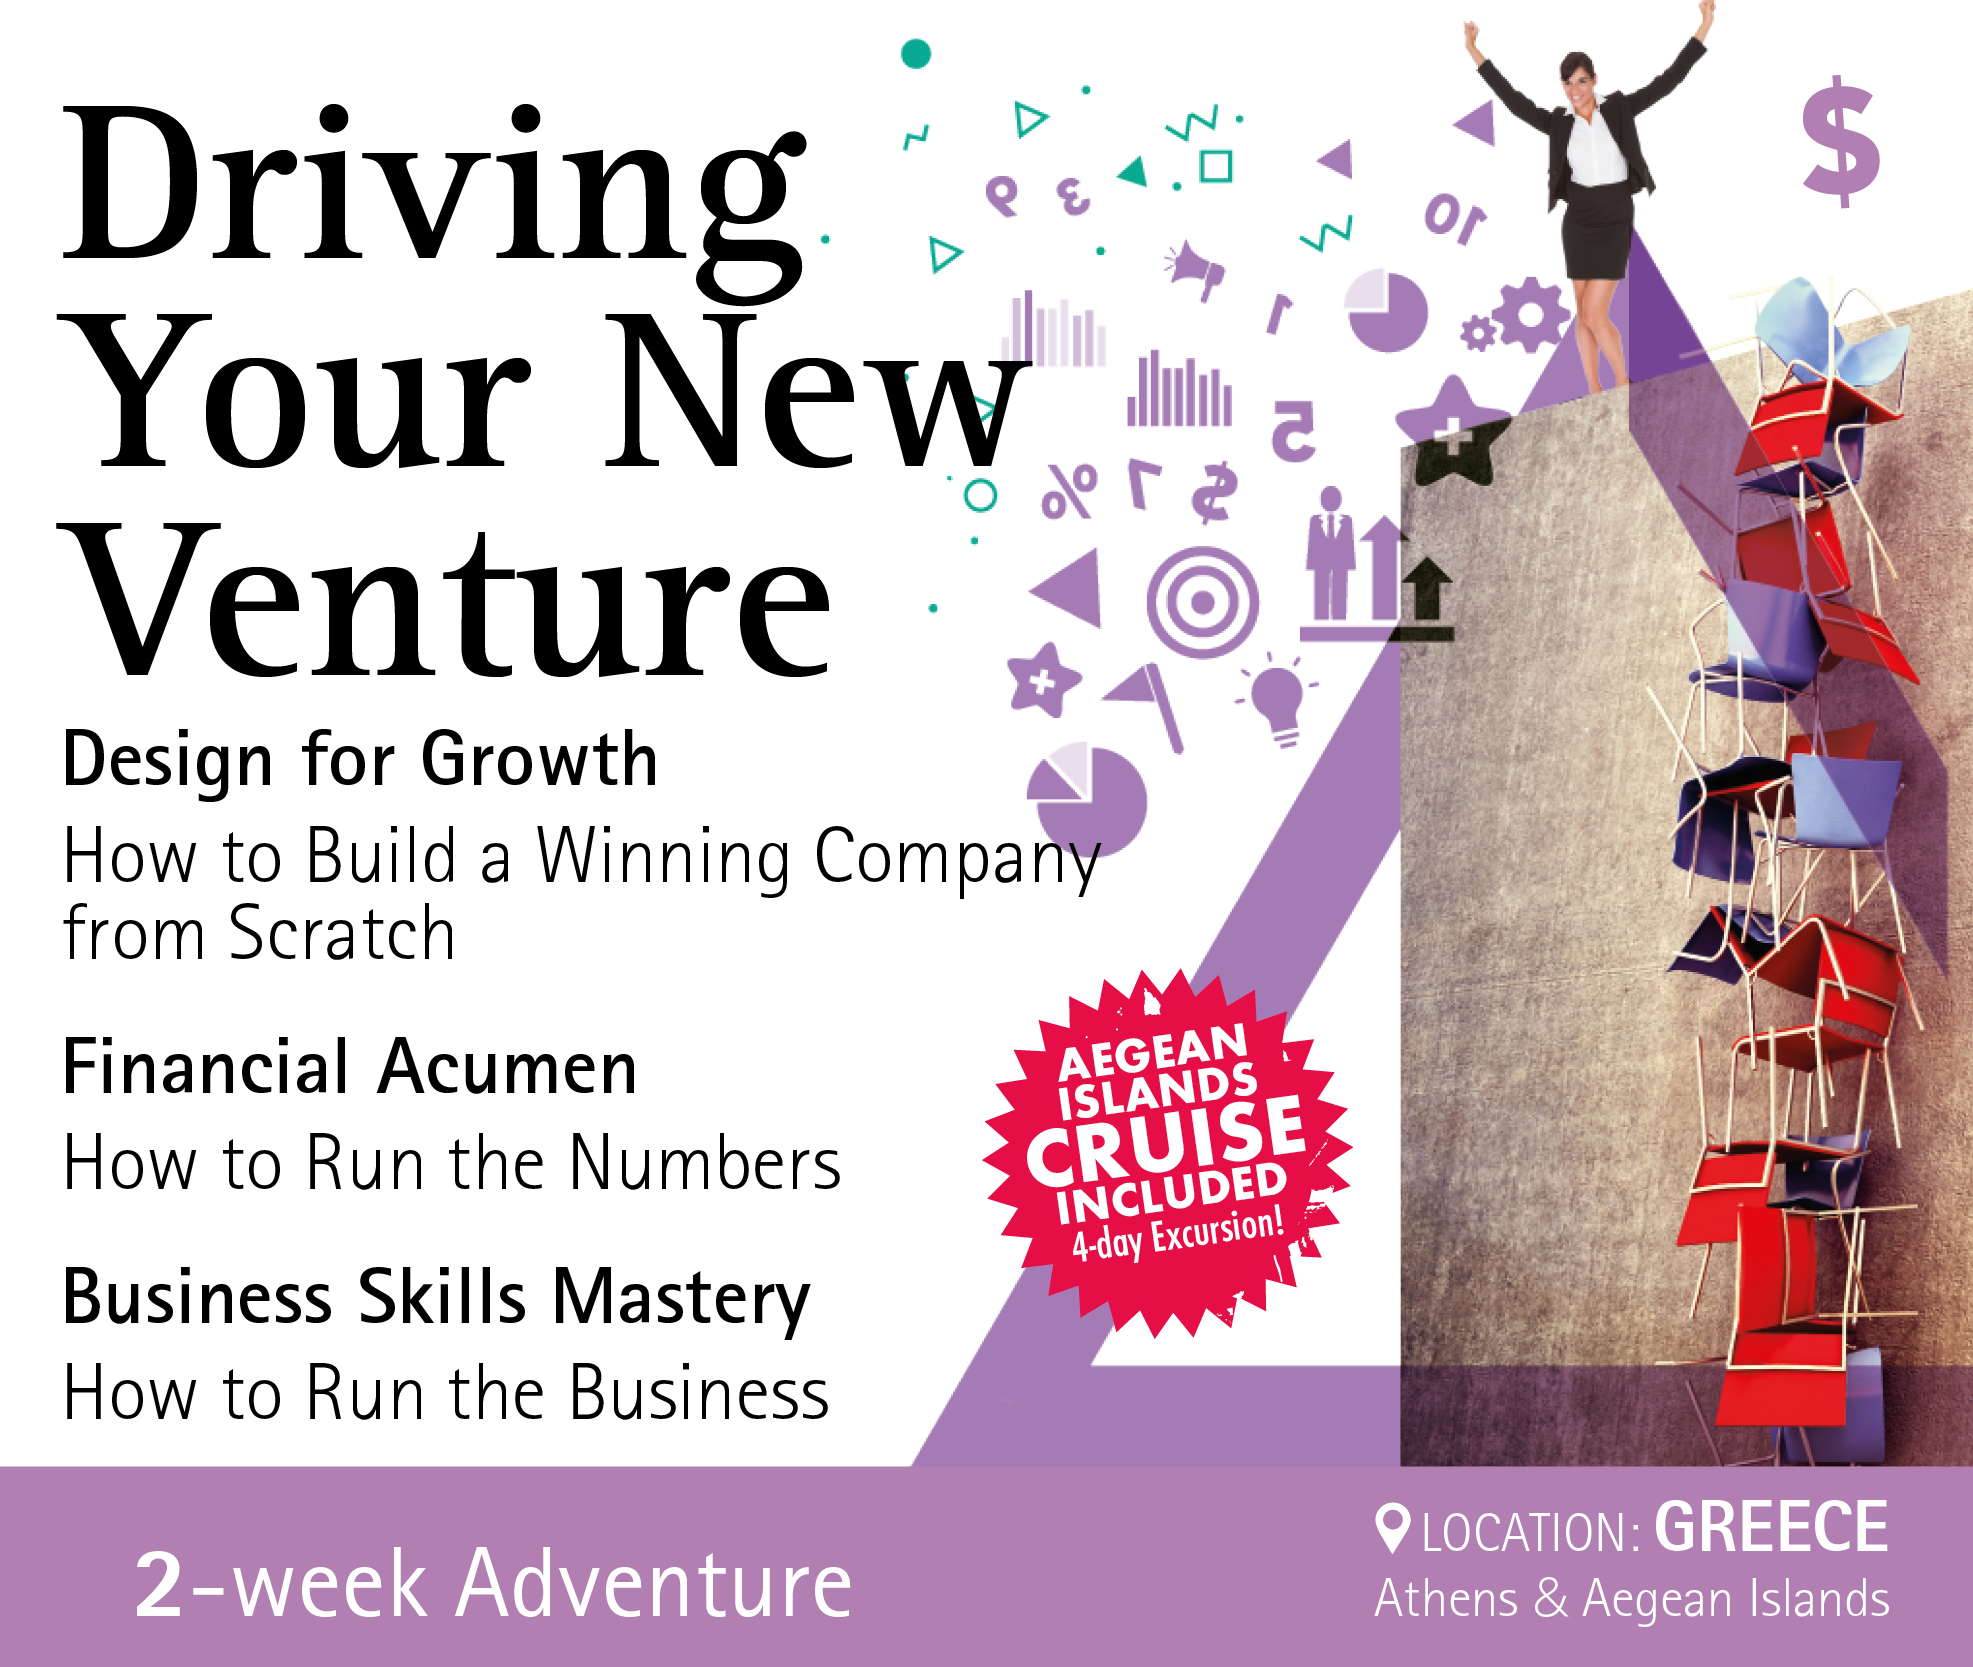 Driving your New Venture